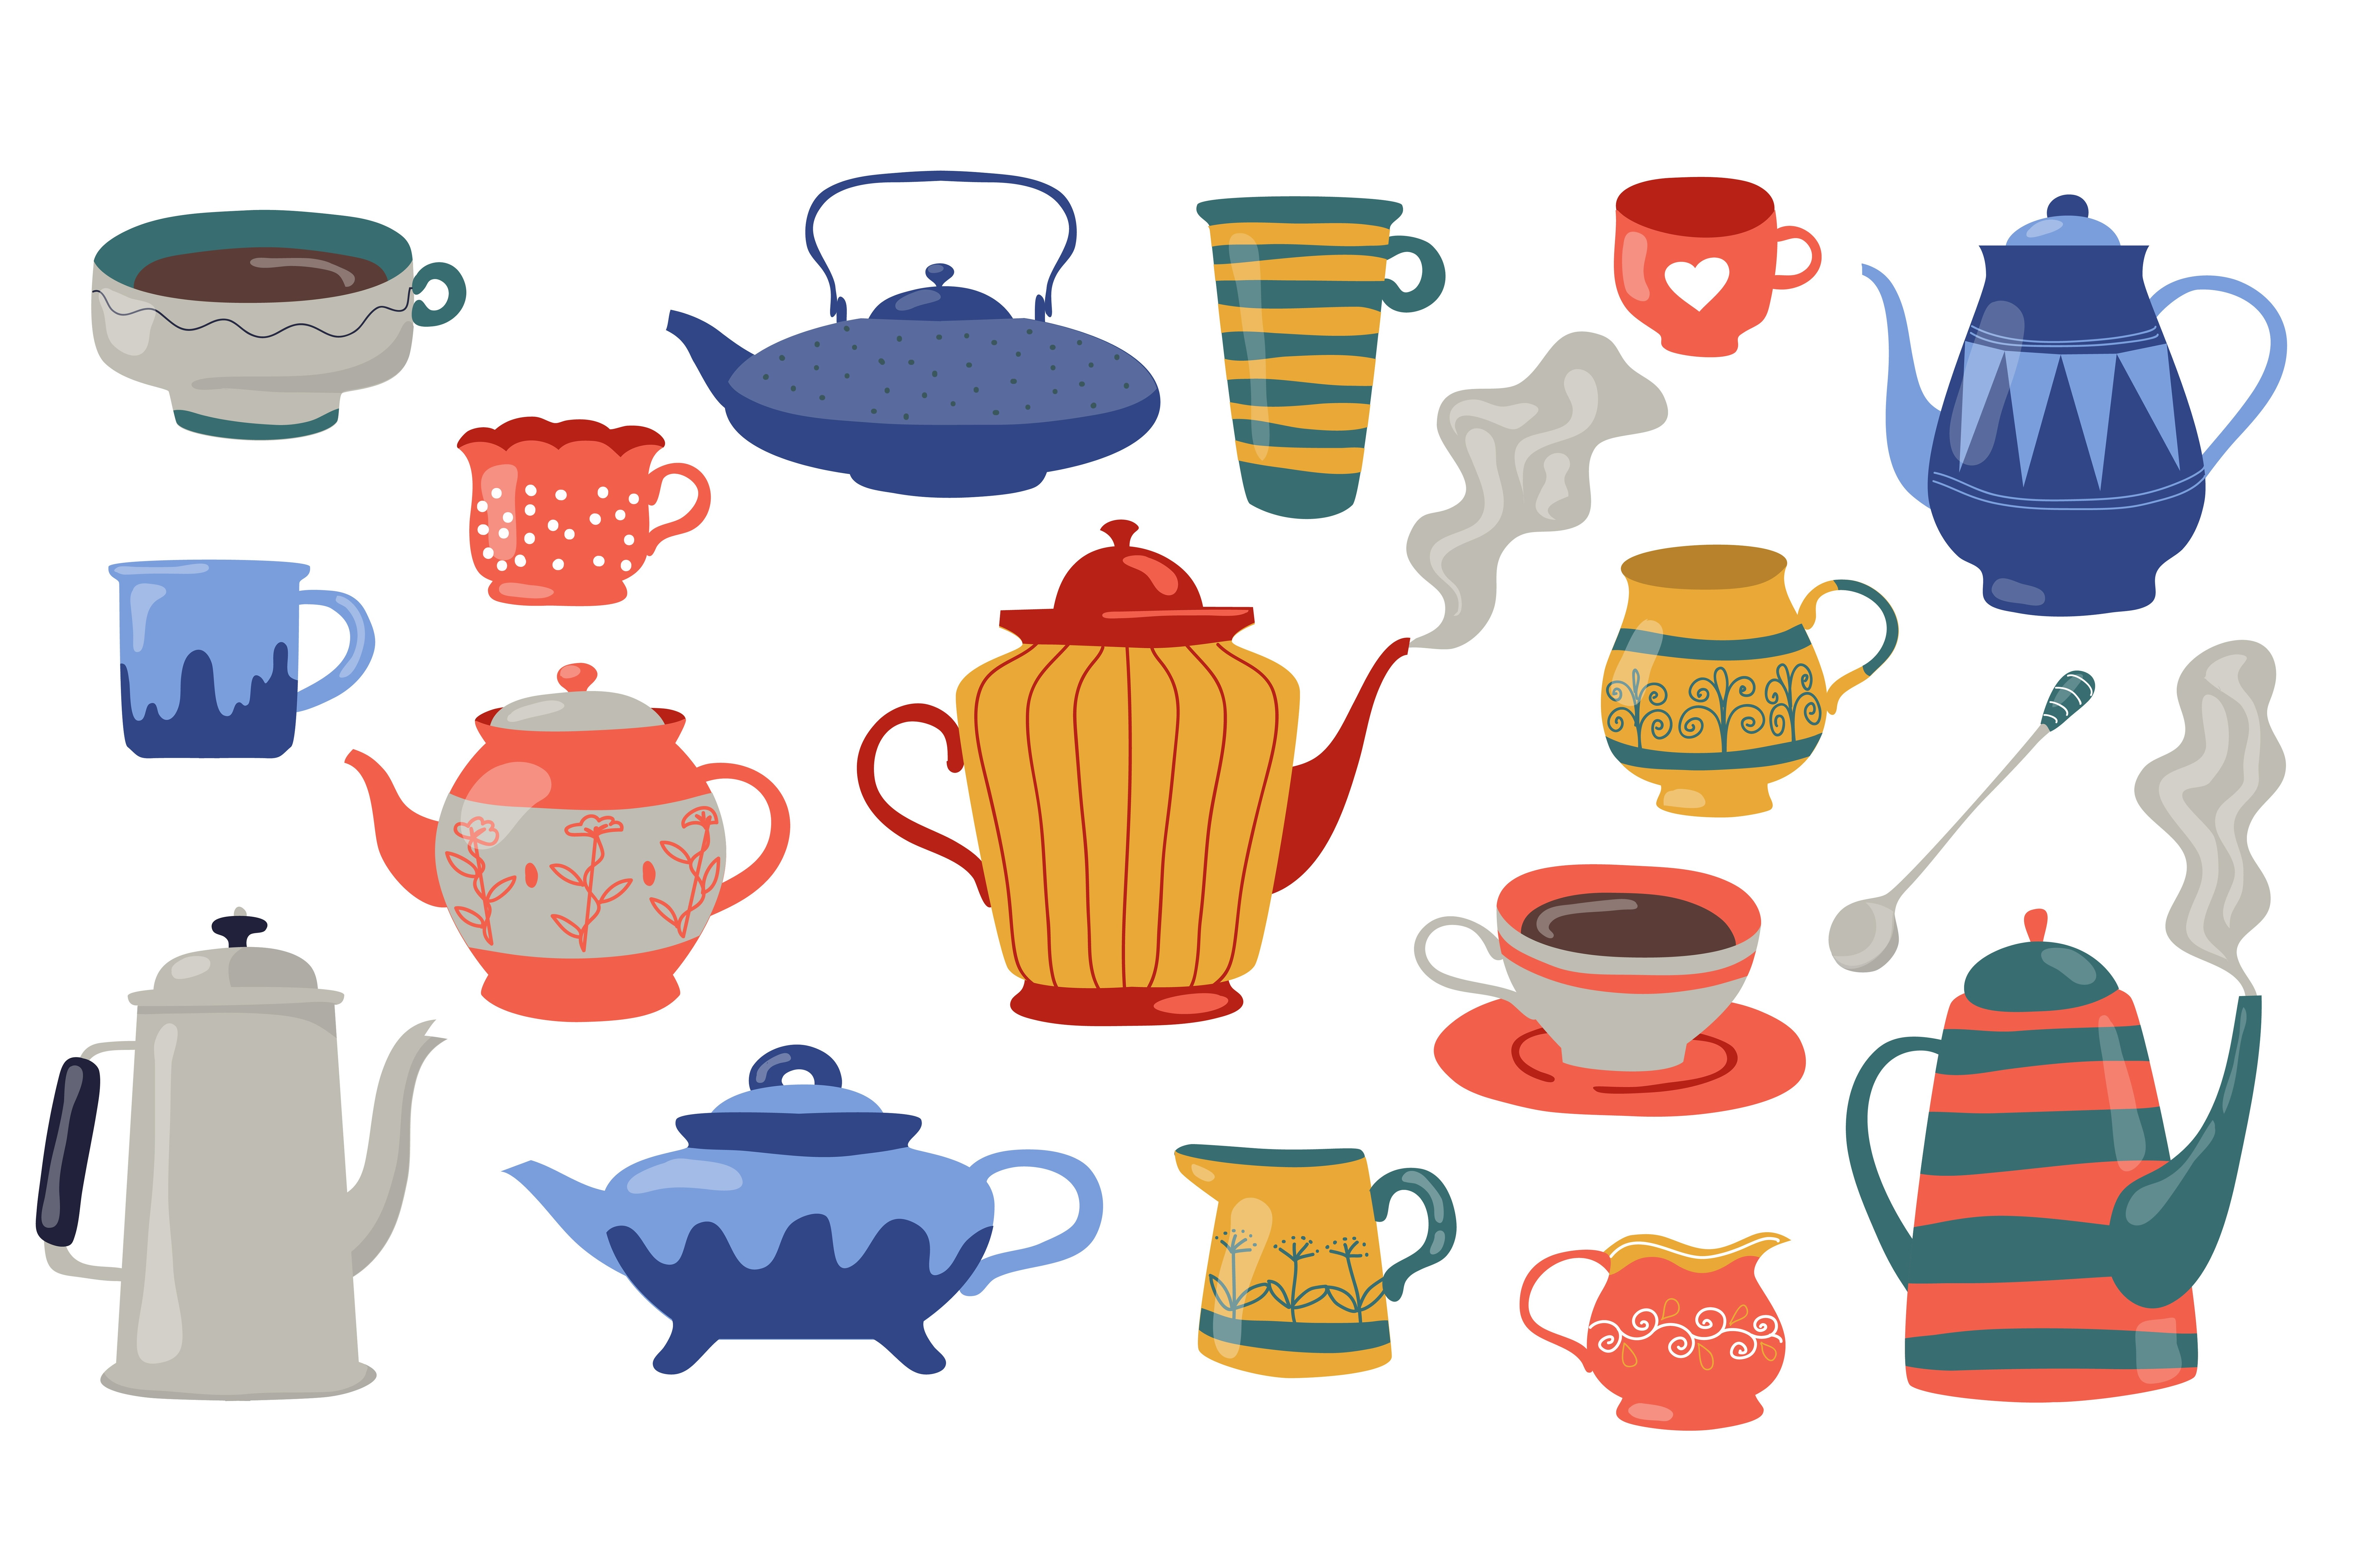 Little drawings of many colourful cups and pots, full of steaming hot drinks.